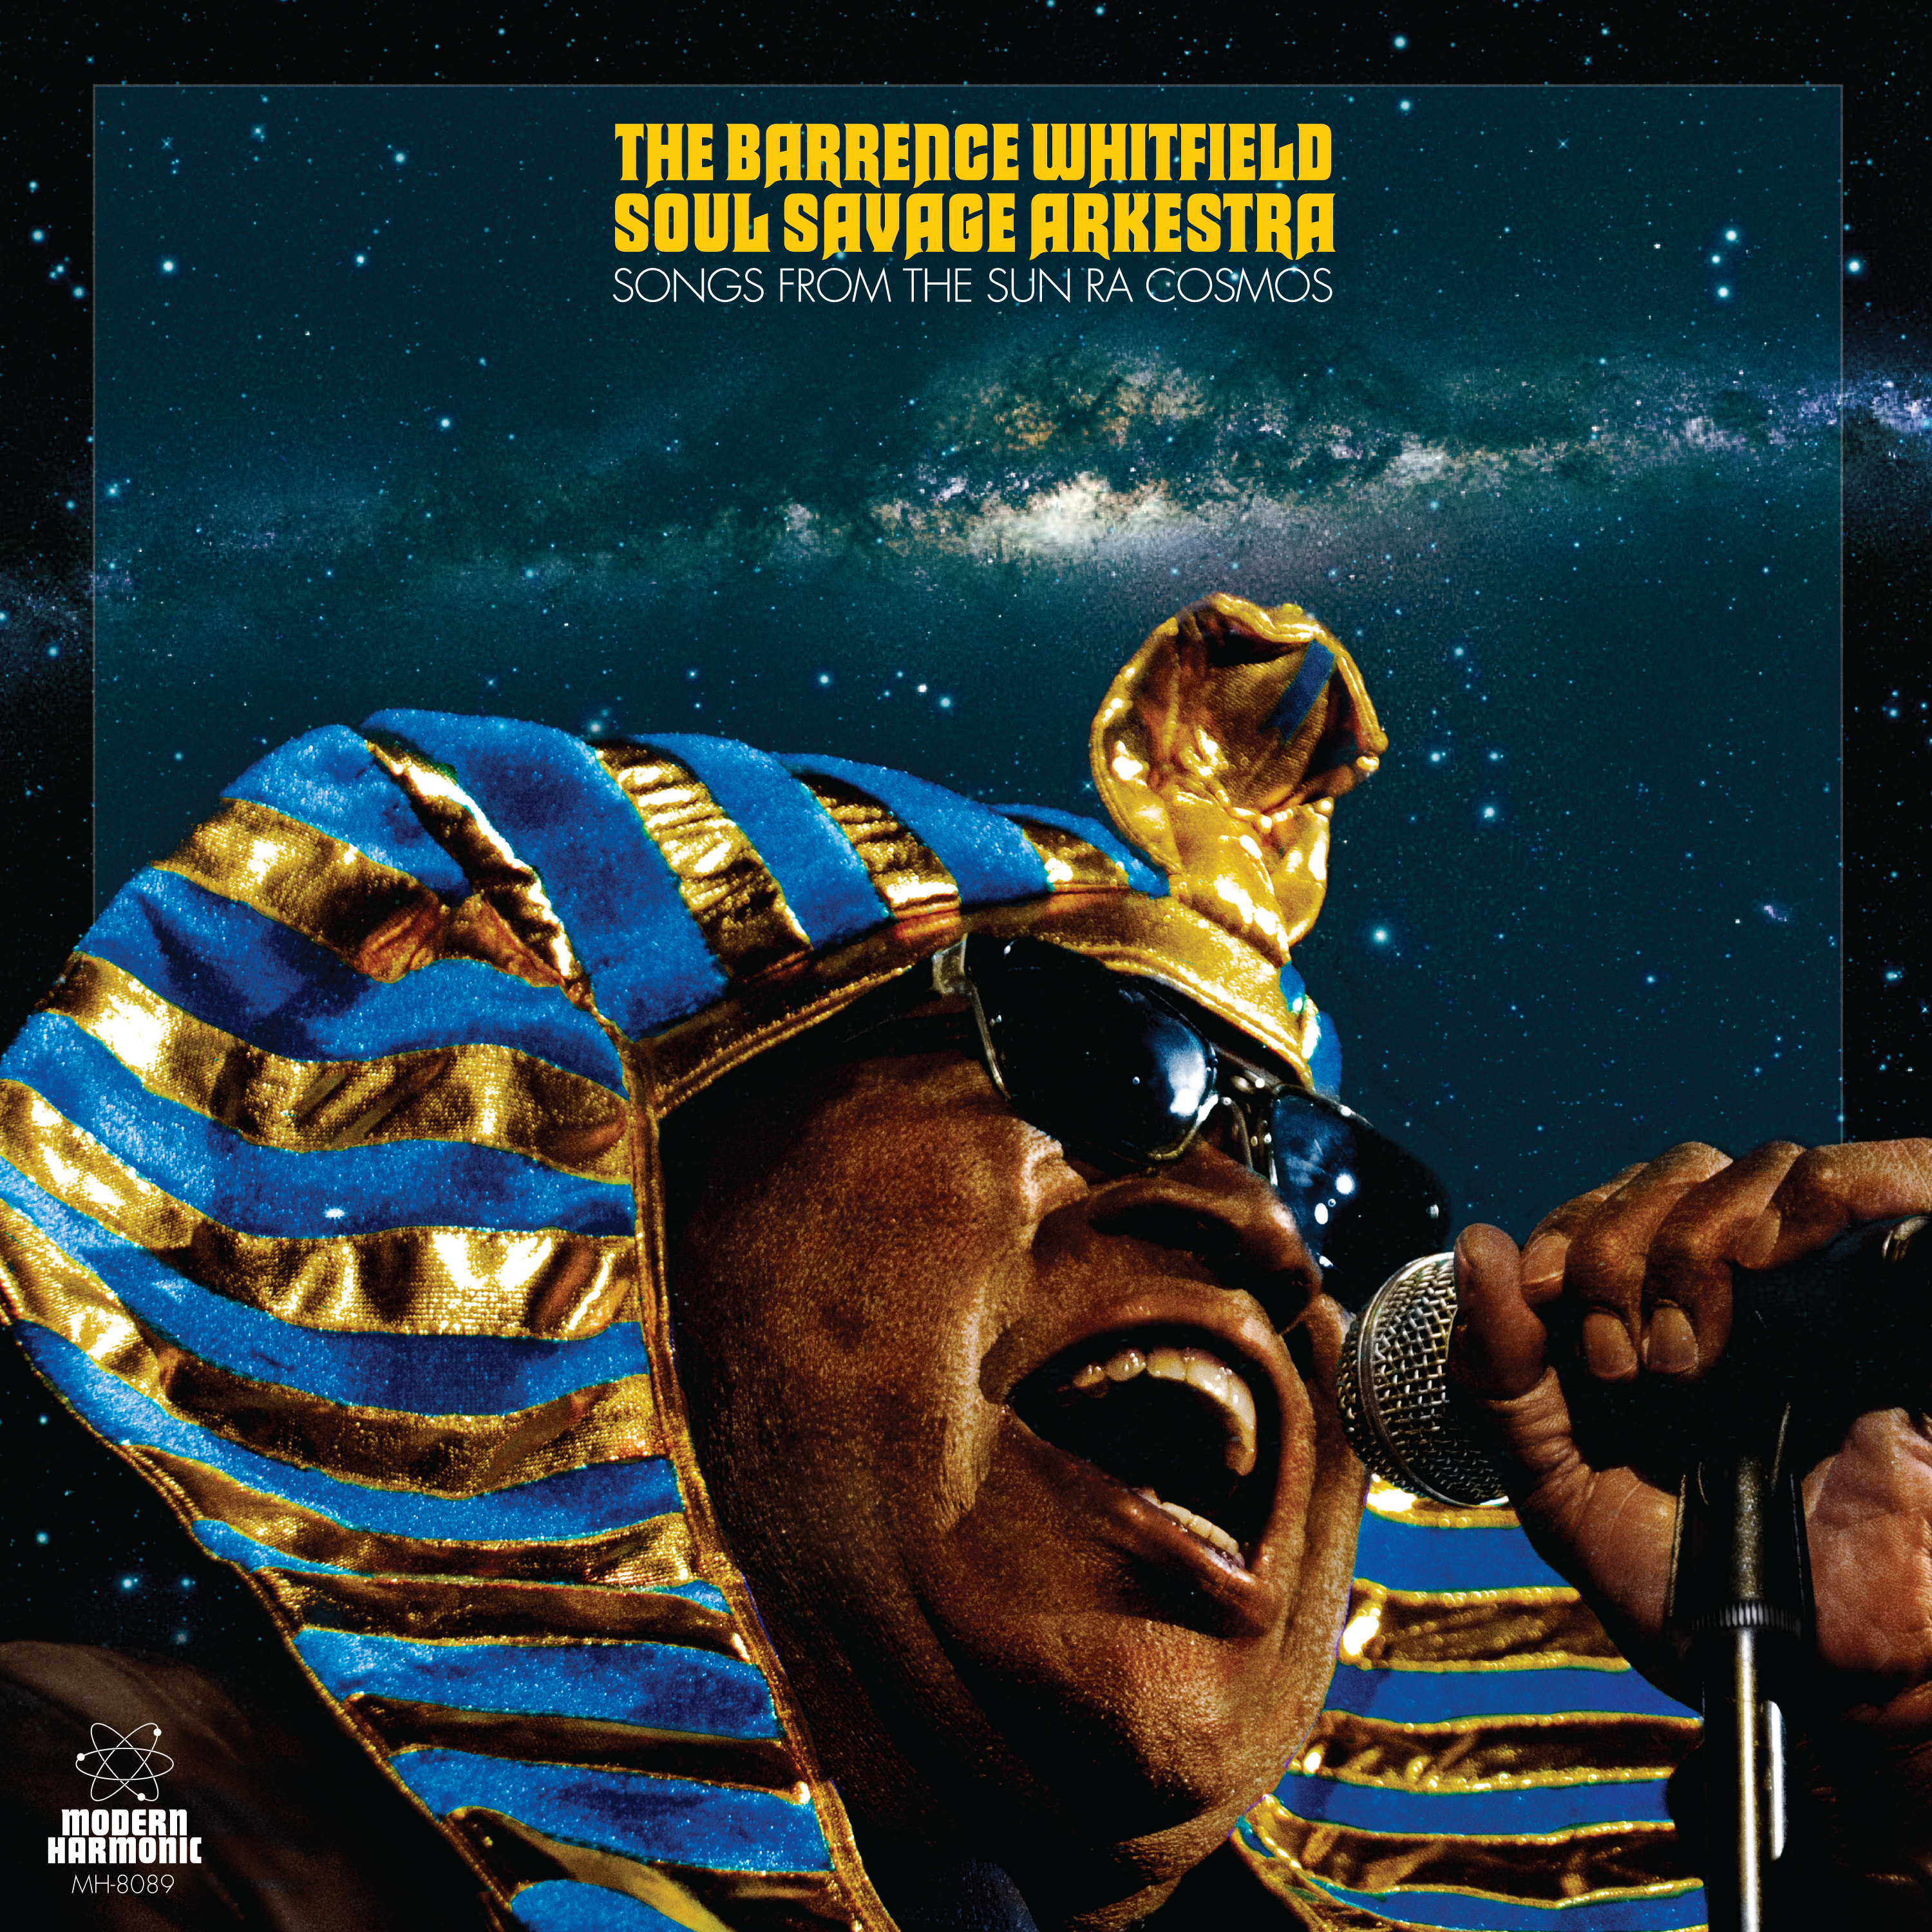 Barrence Whitfield Soul Savage Arkestra, The - Songs From The Sun Ra Cosmos - CD